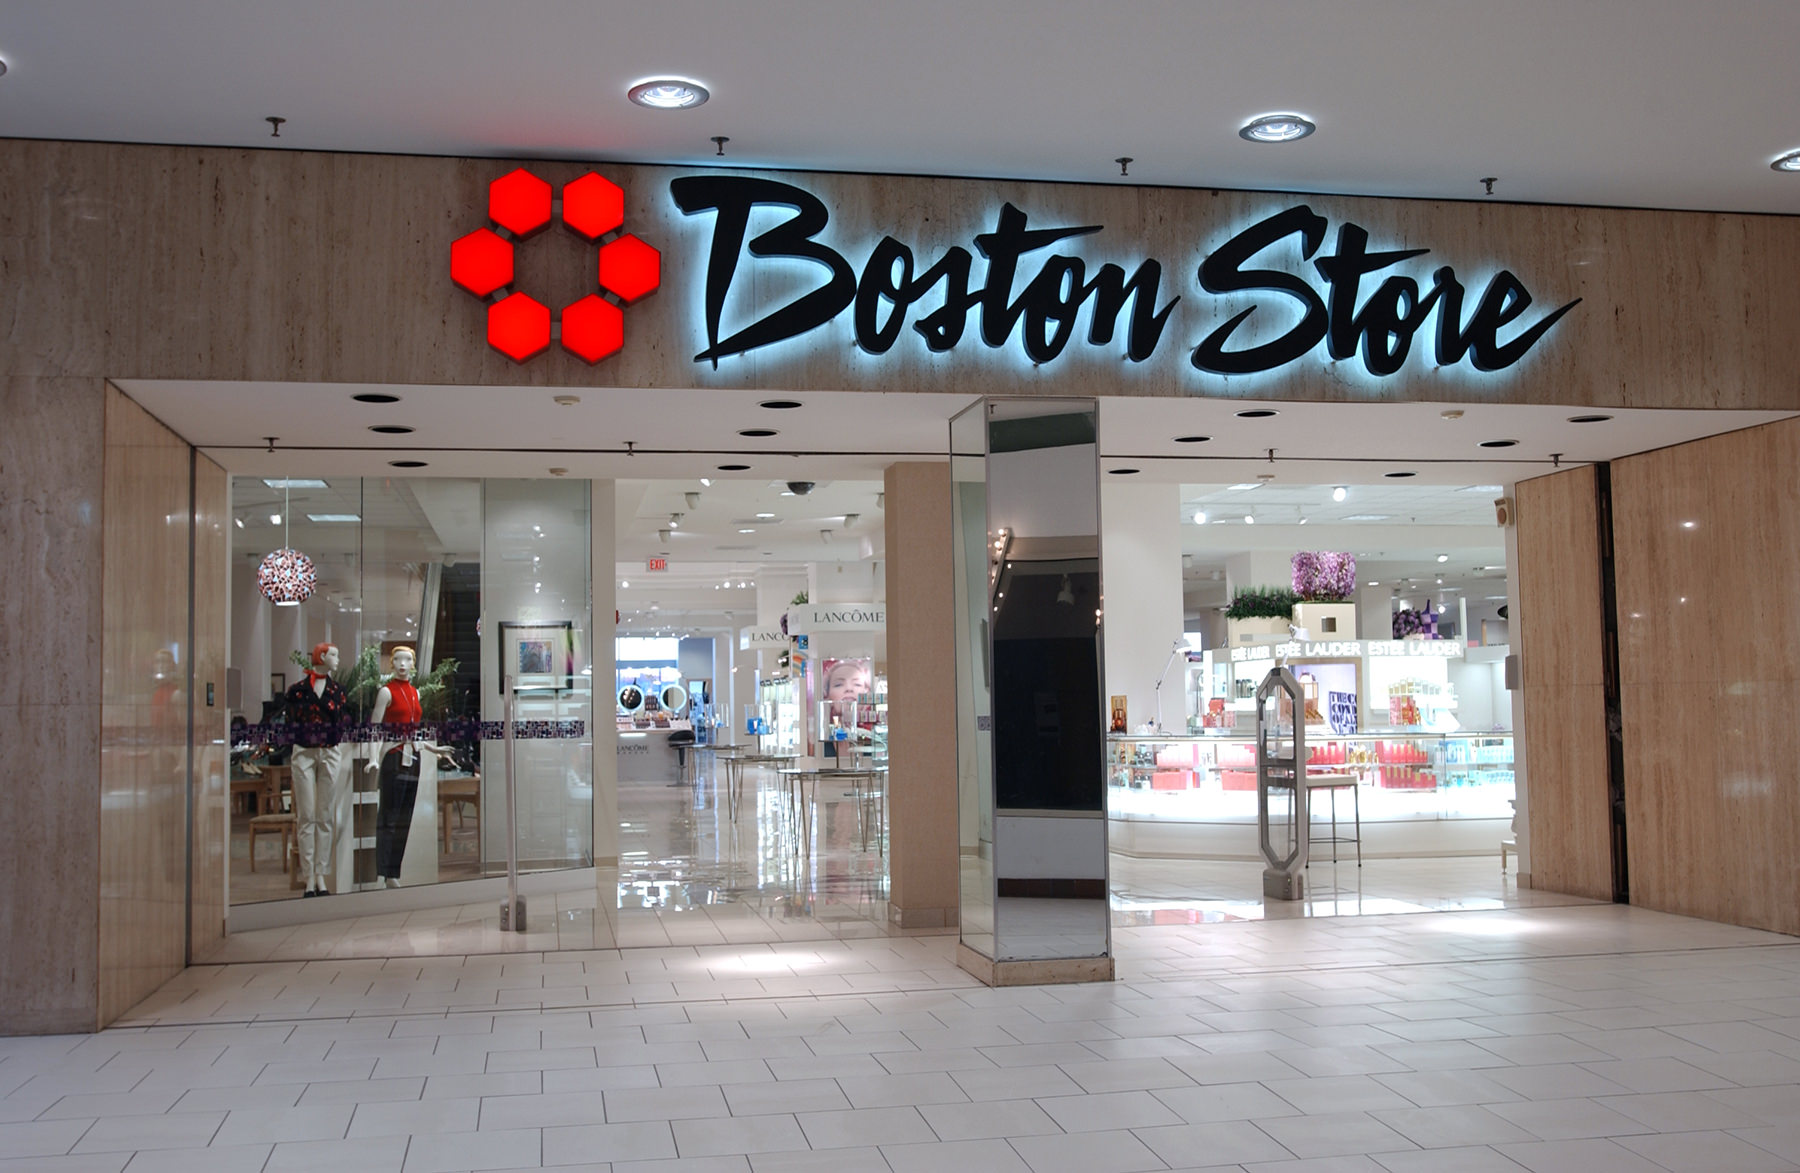 Shopping Tips for Boston Store: 1. Mostly everything can be returned to Boston Store if you're in need of a refund. All items can be returned within 30 days, with the exception of final sale items. 2. One of the easiest ways to collect store credit is by trading in semi-used brand-name items that you no longer want.